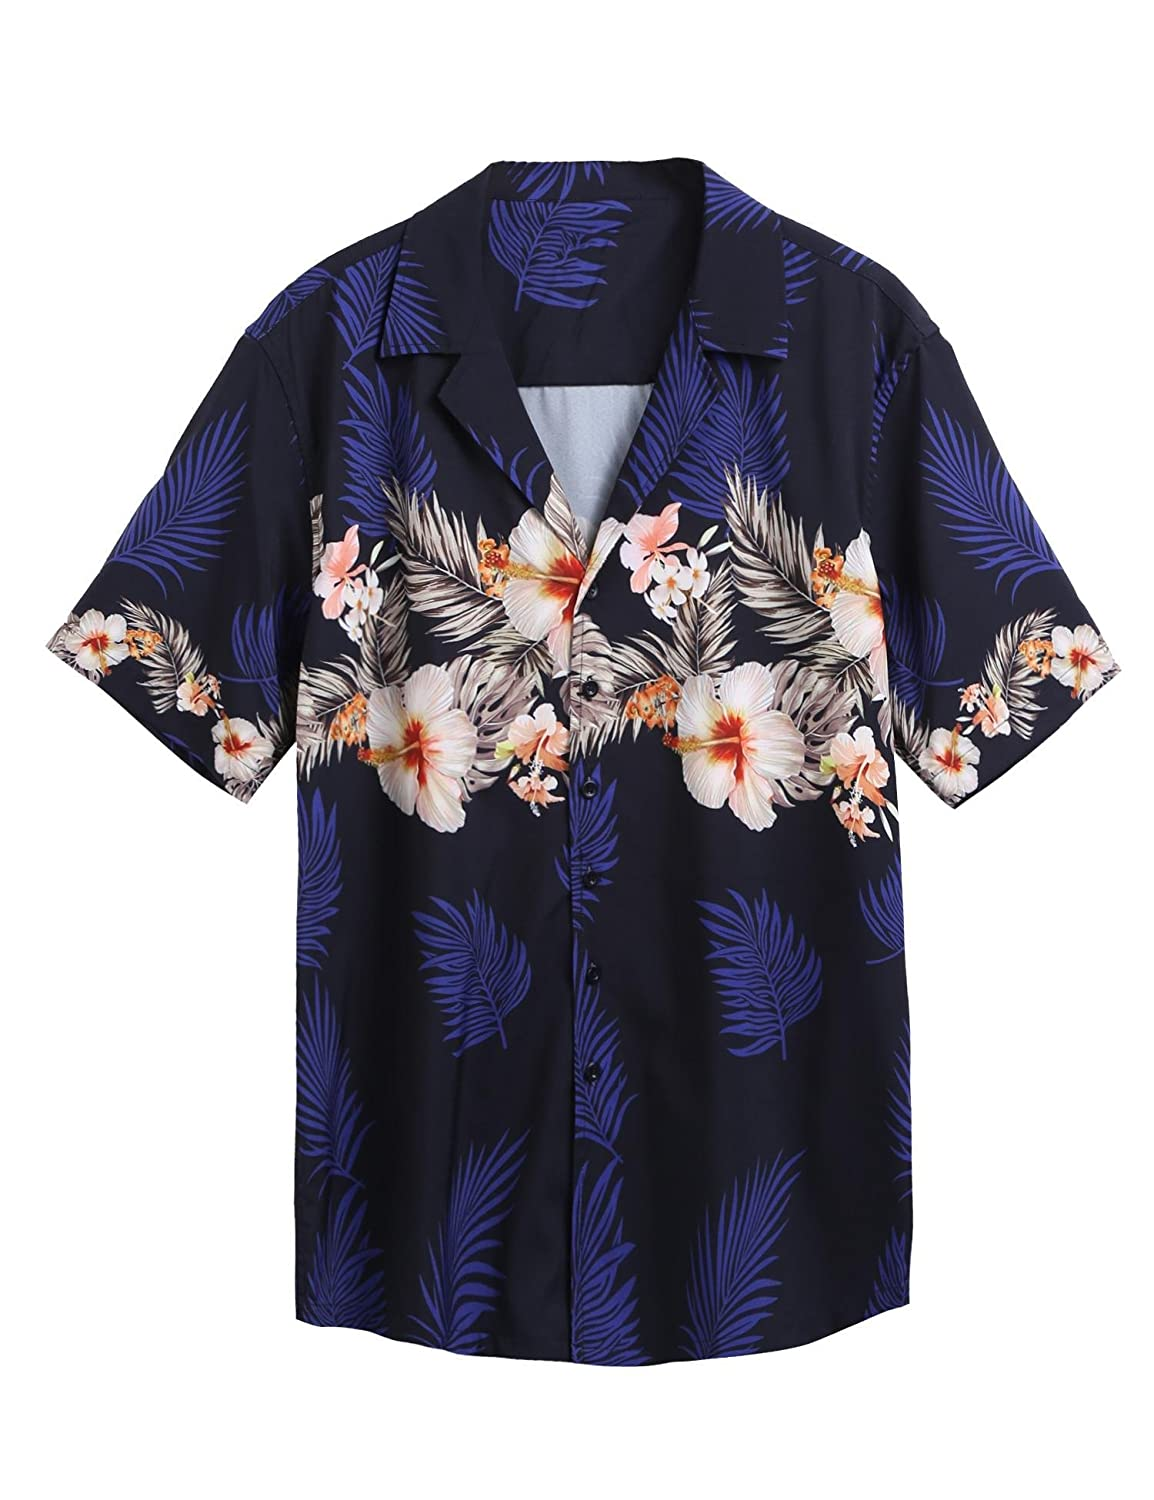 6e6ce3b0 ✿Flower Printed Aloha Hawaiian Shirt with soft, thin and very light  material and is therefore ideal for hot and sunny days to wear. ✿Slim fit, Button  down ...